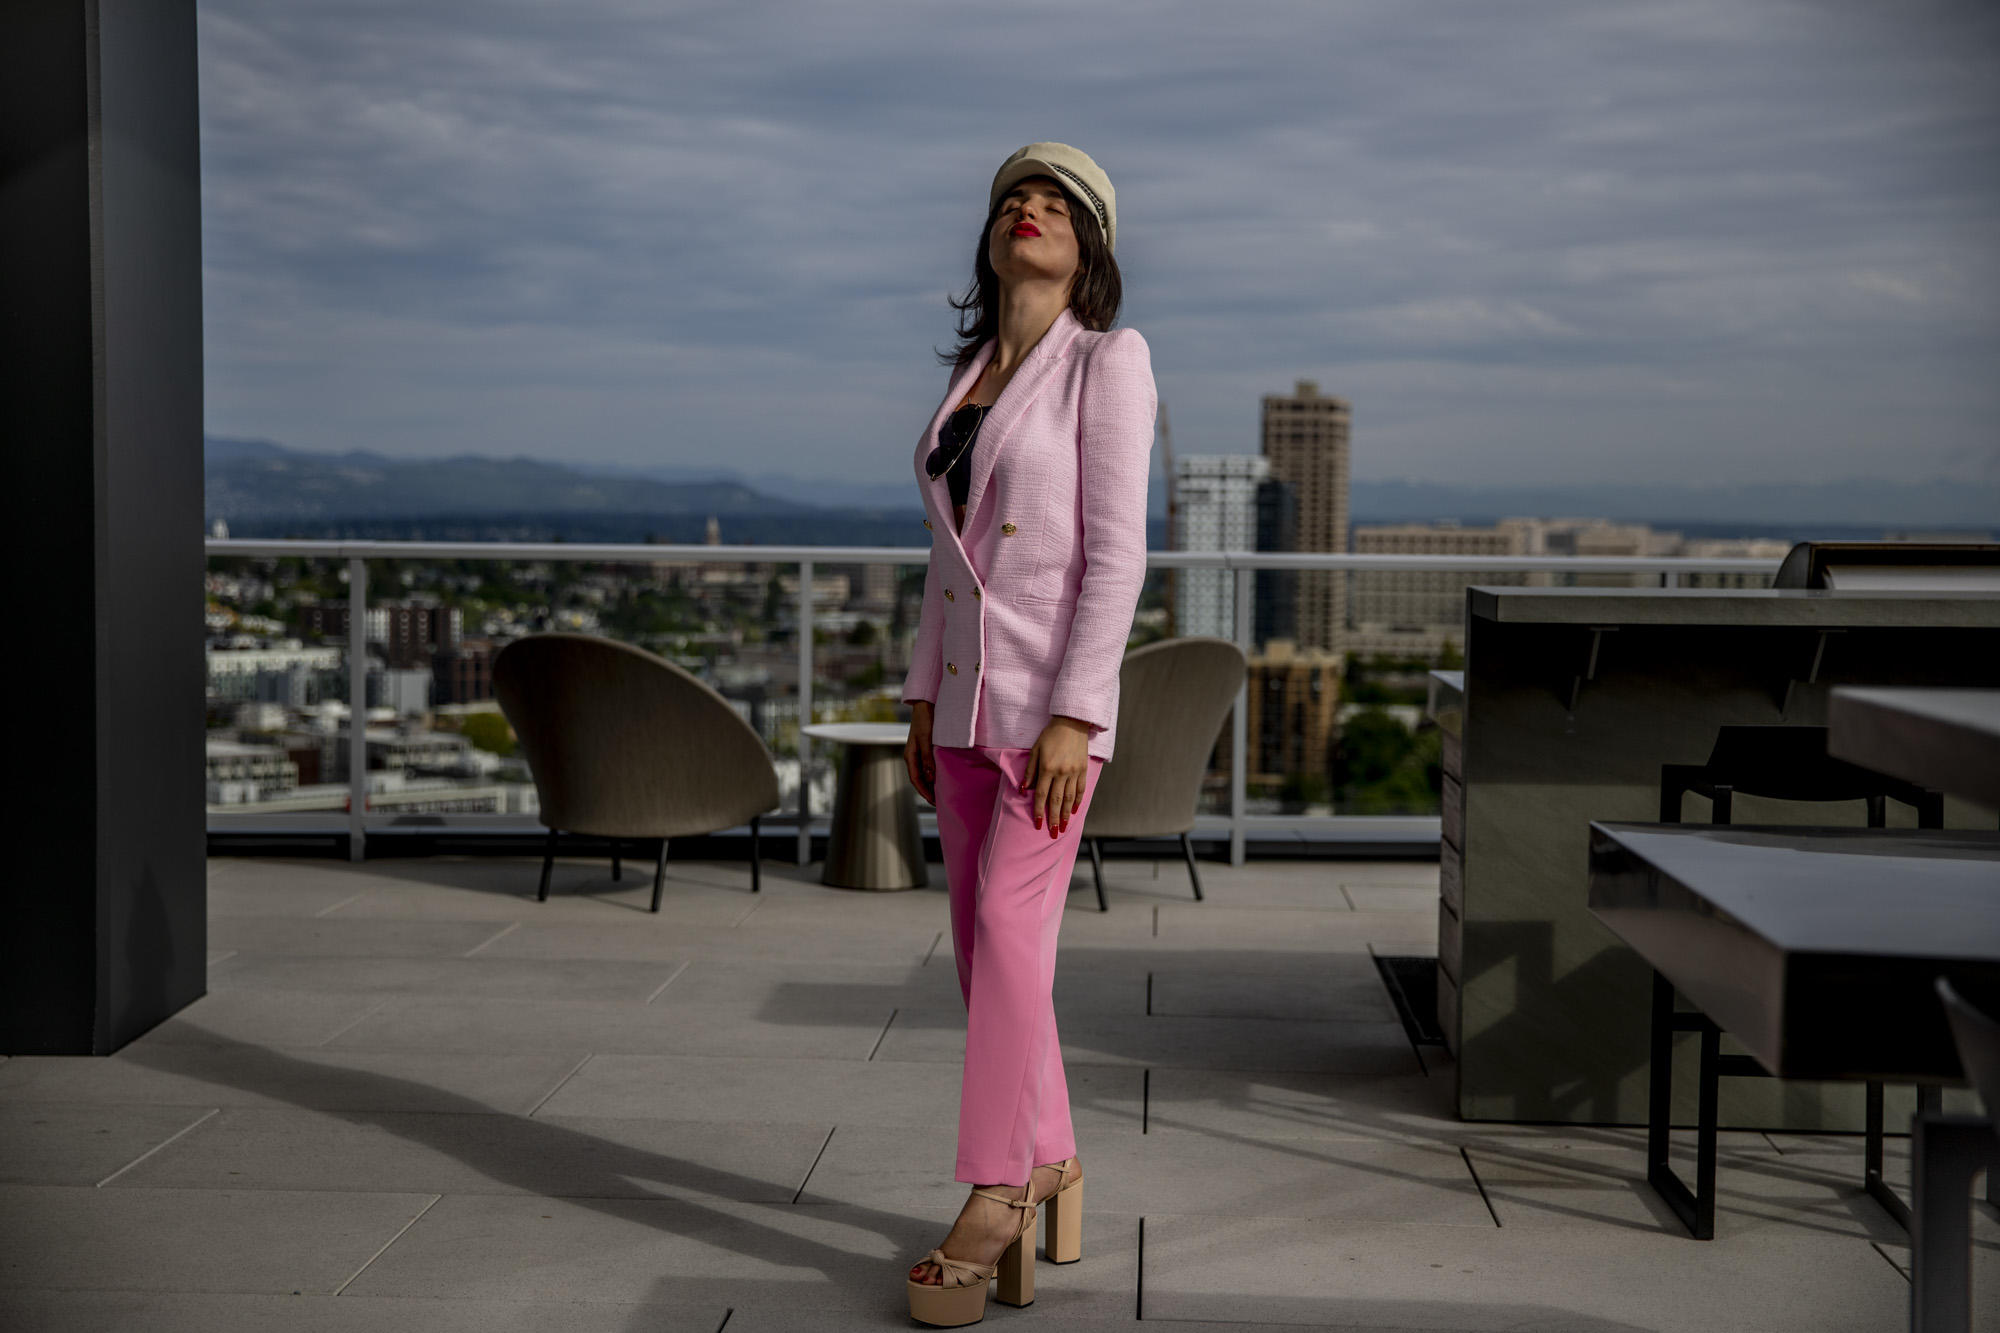 On a concrete rooftop patio wit ha city skyline nad mountains in the background, a person in a pink suit stands and looks up at the sky.